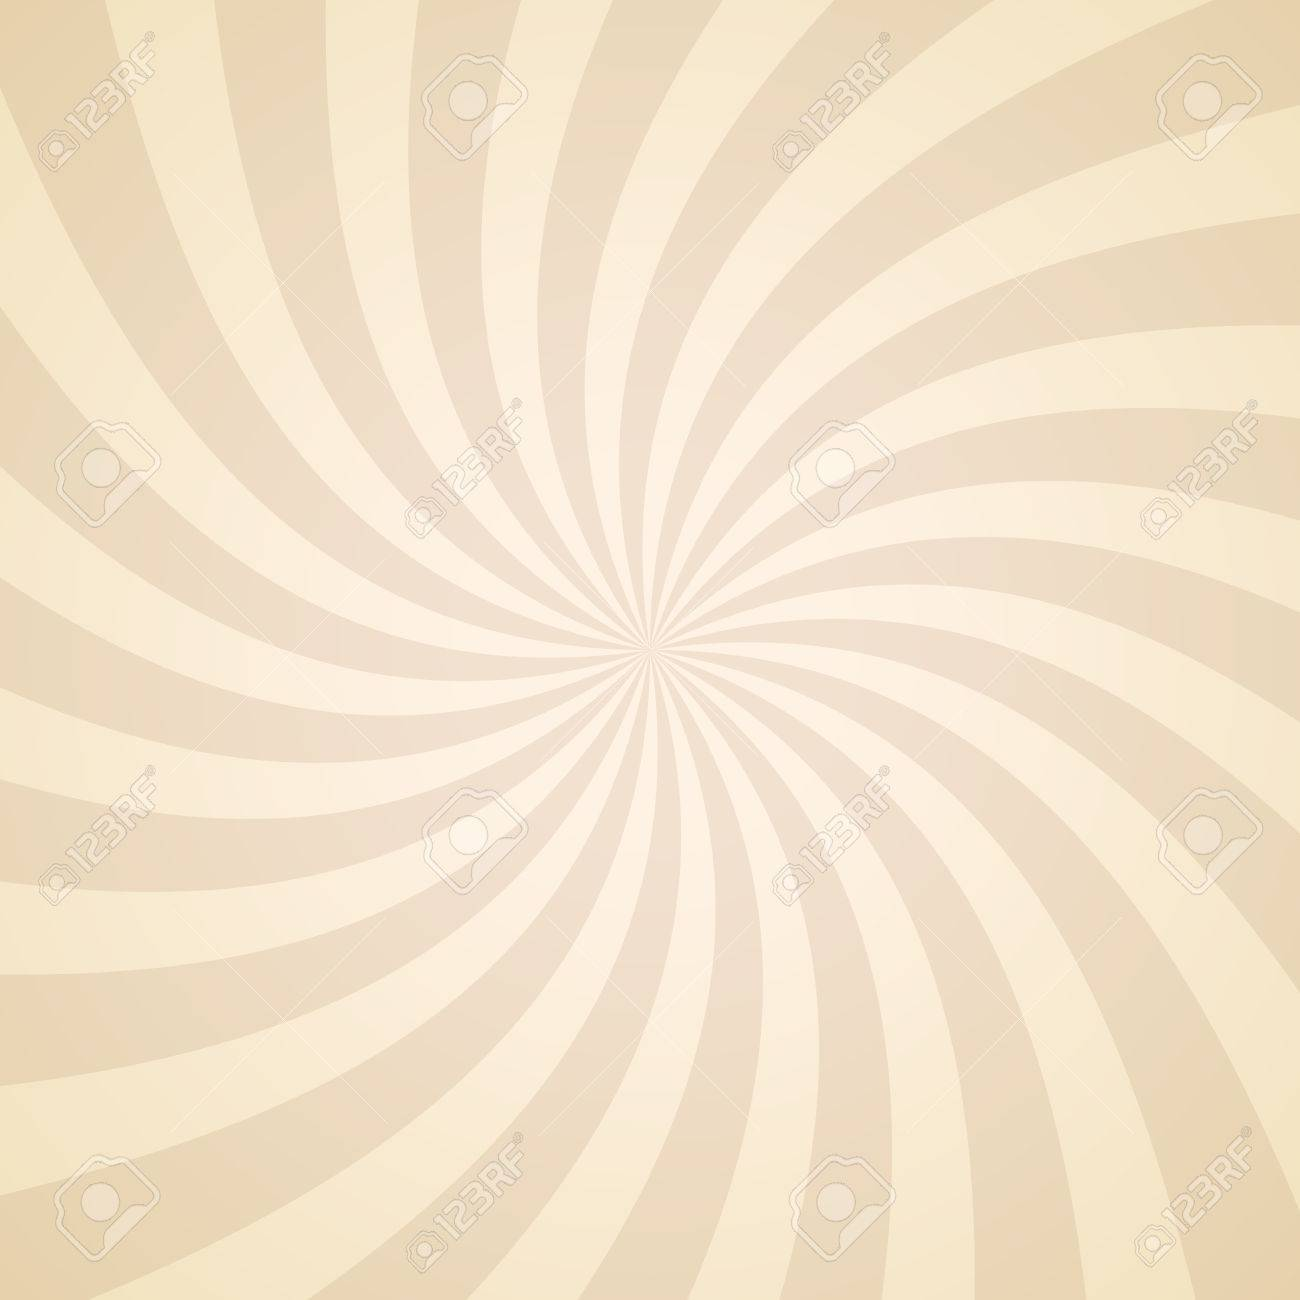 Swirling radial pattern background. Vector illustration for swirl design. Vortex starburst spiral twirl square. Helix rotation rays. Converging psychadelic scalable stripes. Fun sun light beams. - 53985143